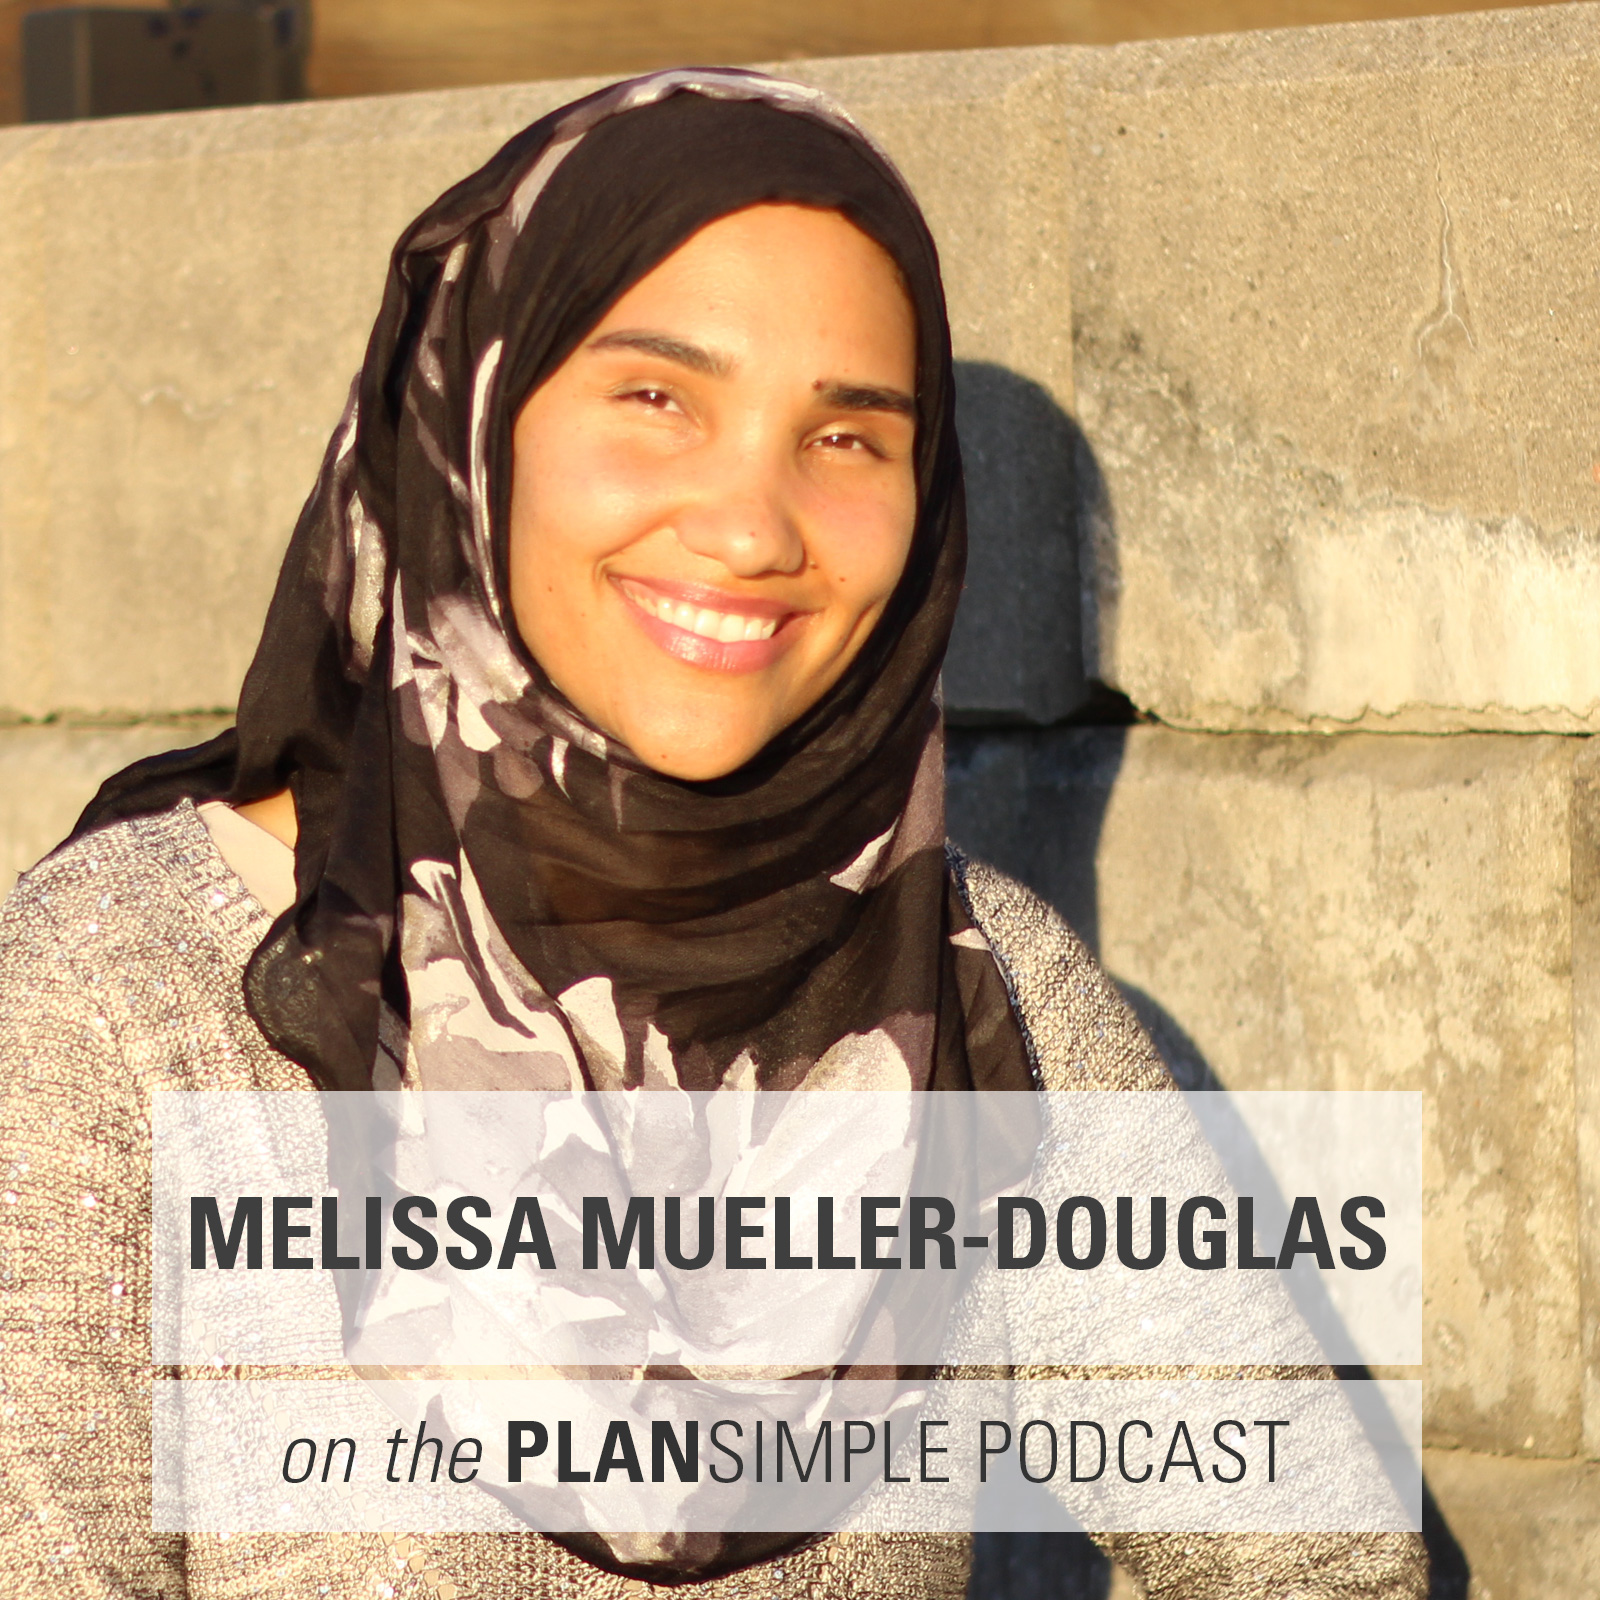 Self Care For ALL With Melissa Mueller-Douglas